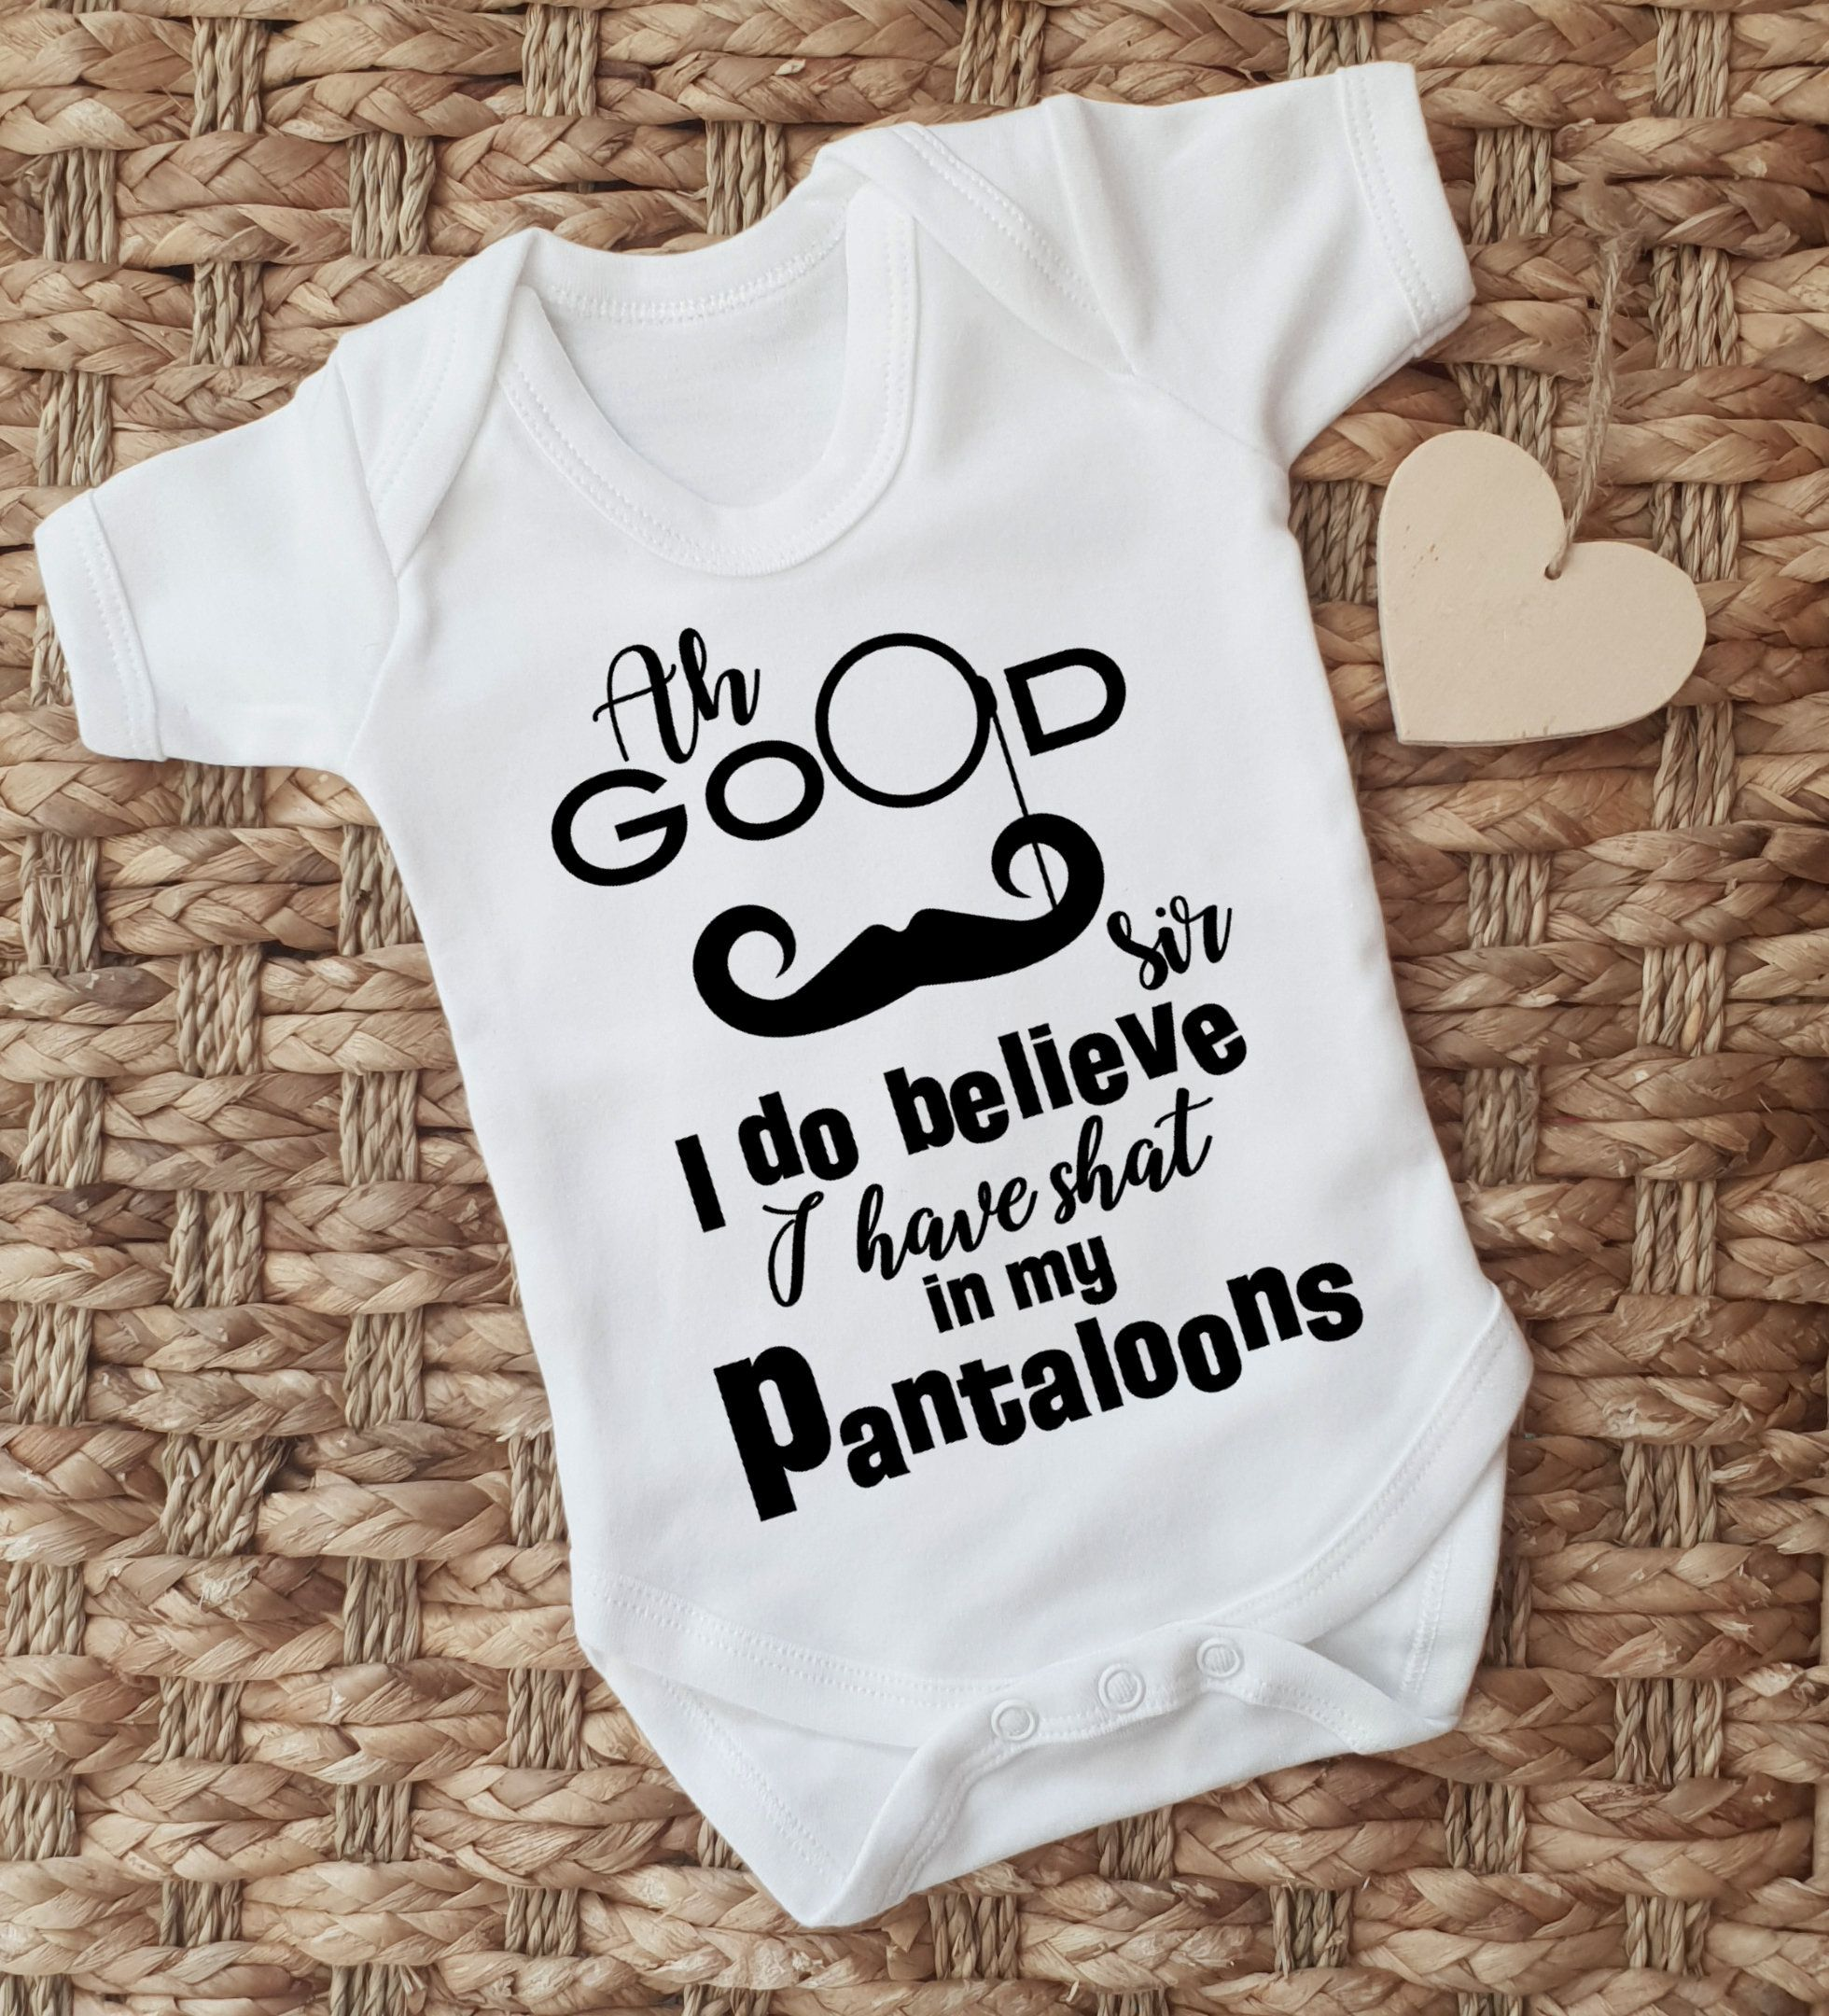 0408ecf8cb3 Ah good sir I do believe I have shat in my pantaloons white bodysuit vest  baby grow. by MumKnowsBabyGrows on Etsy